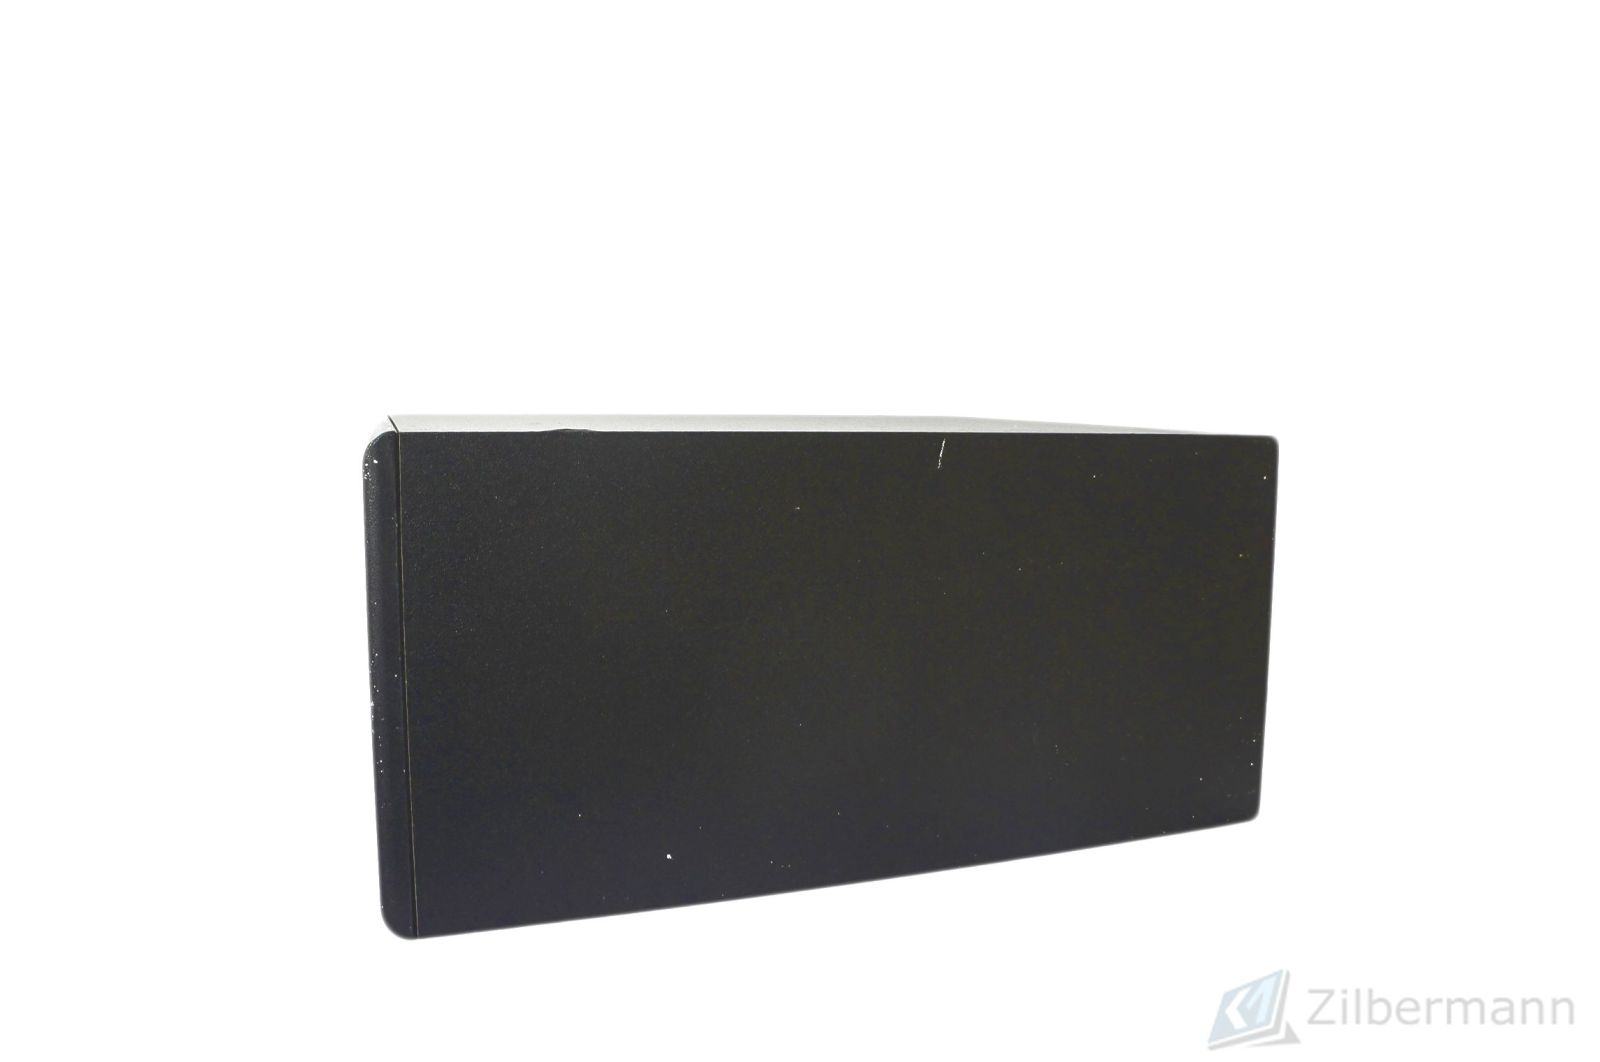 Bose_Acoustimass_6_Heimkino-System_Subwoofer_07